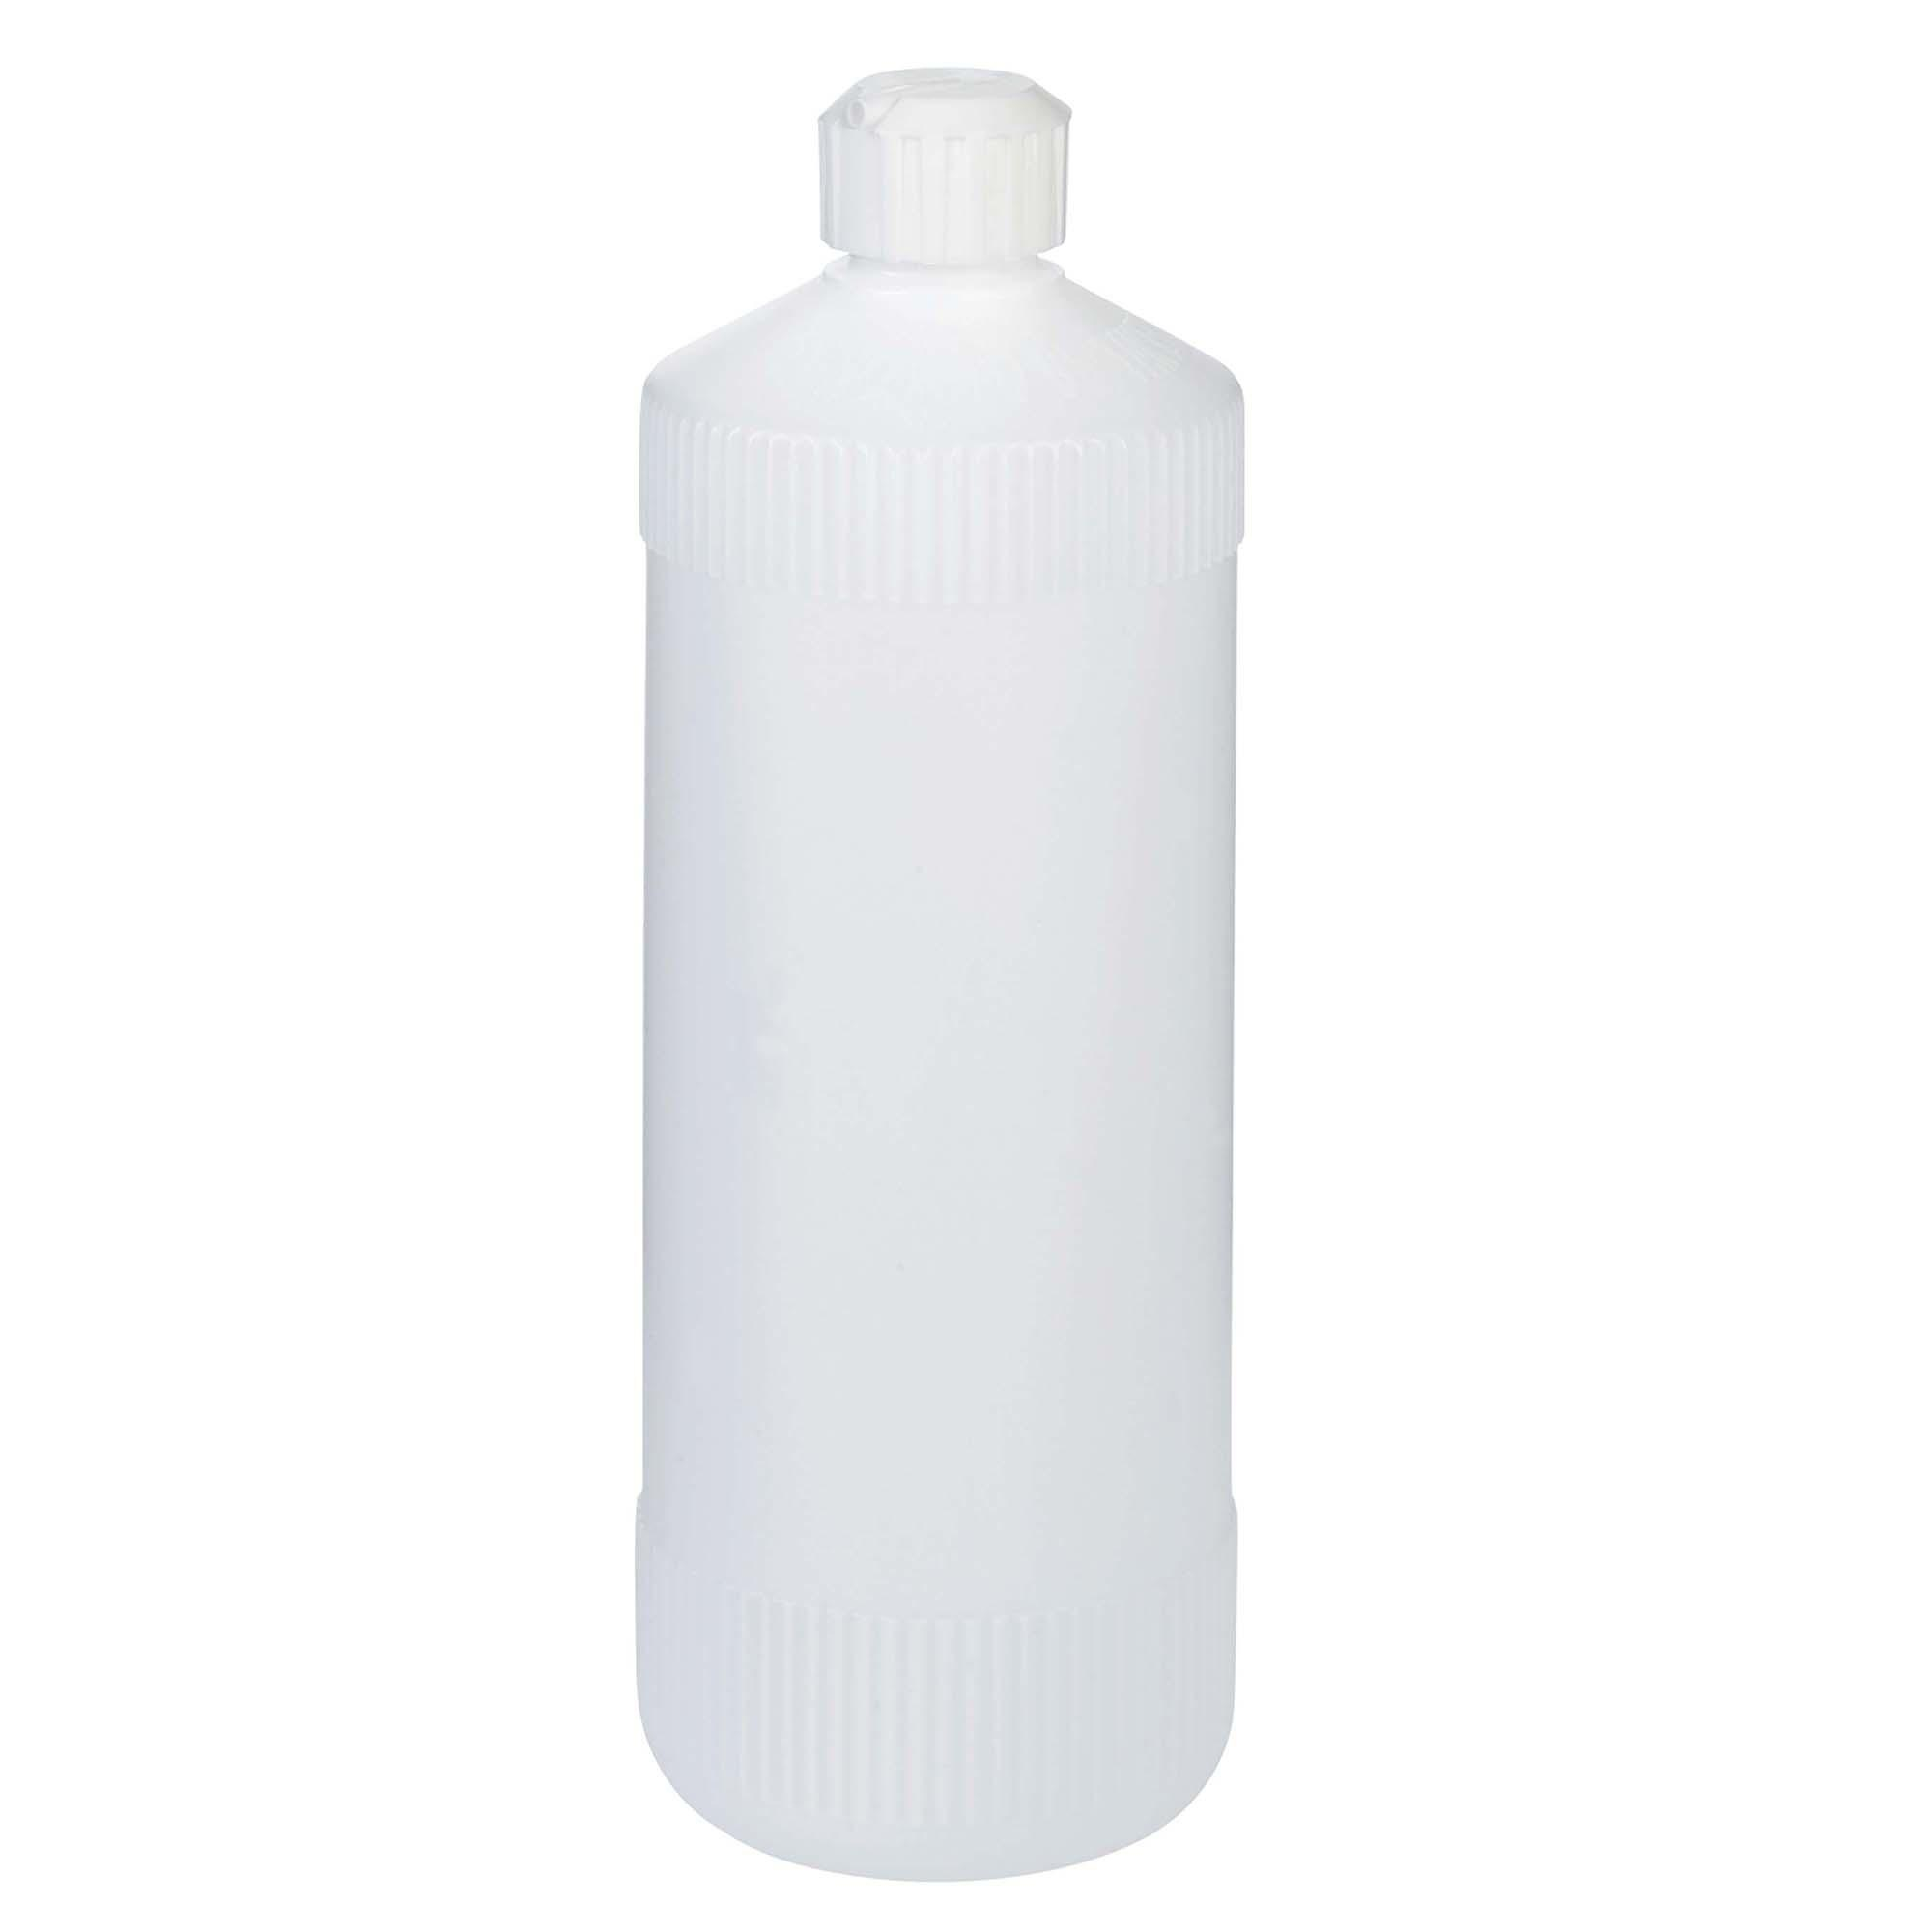 DHH15115%20%20Plain%20Squeeze%20Bottle%20kit%20750ml%202000x2000px.jpg